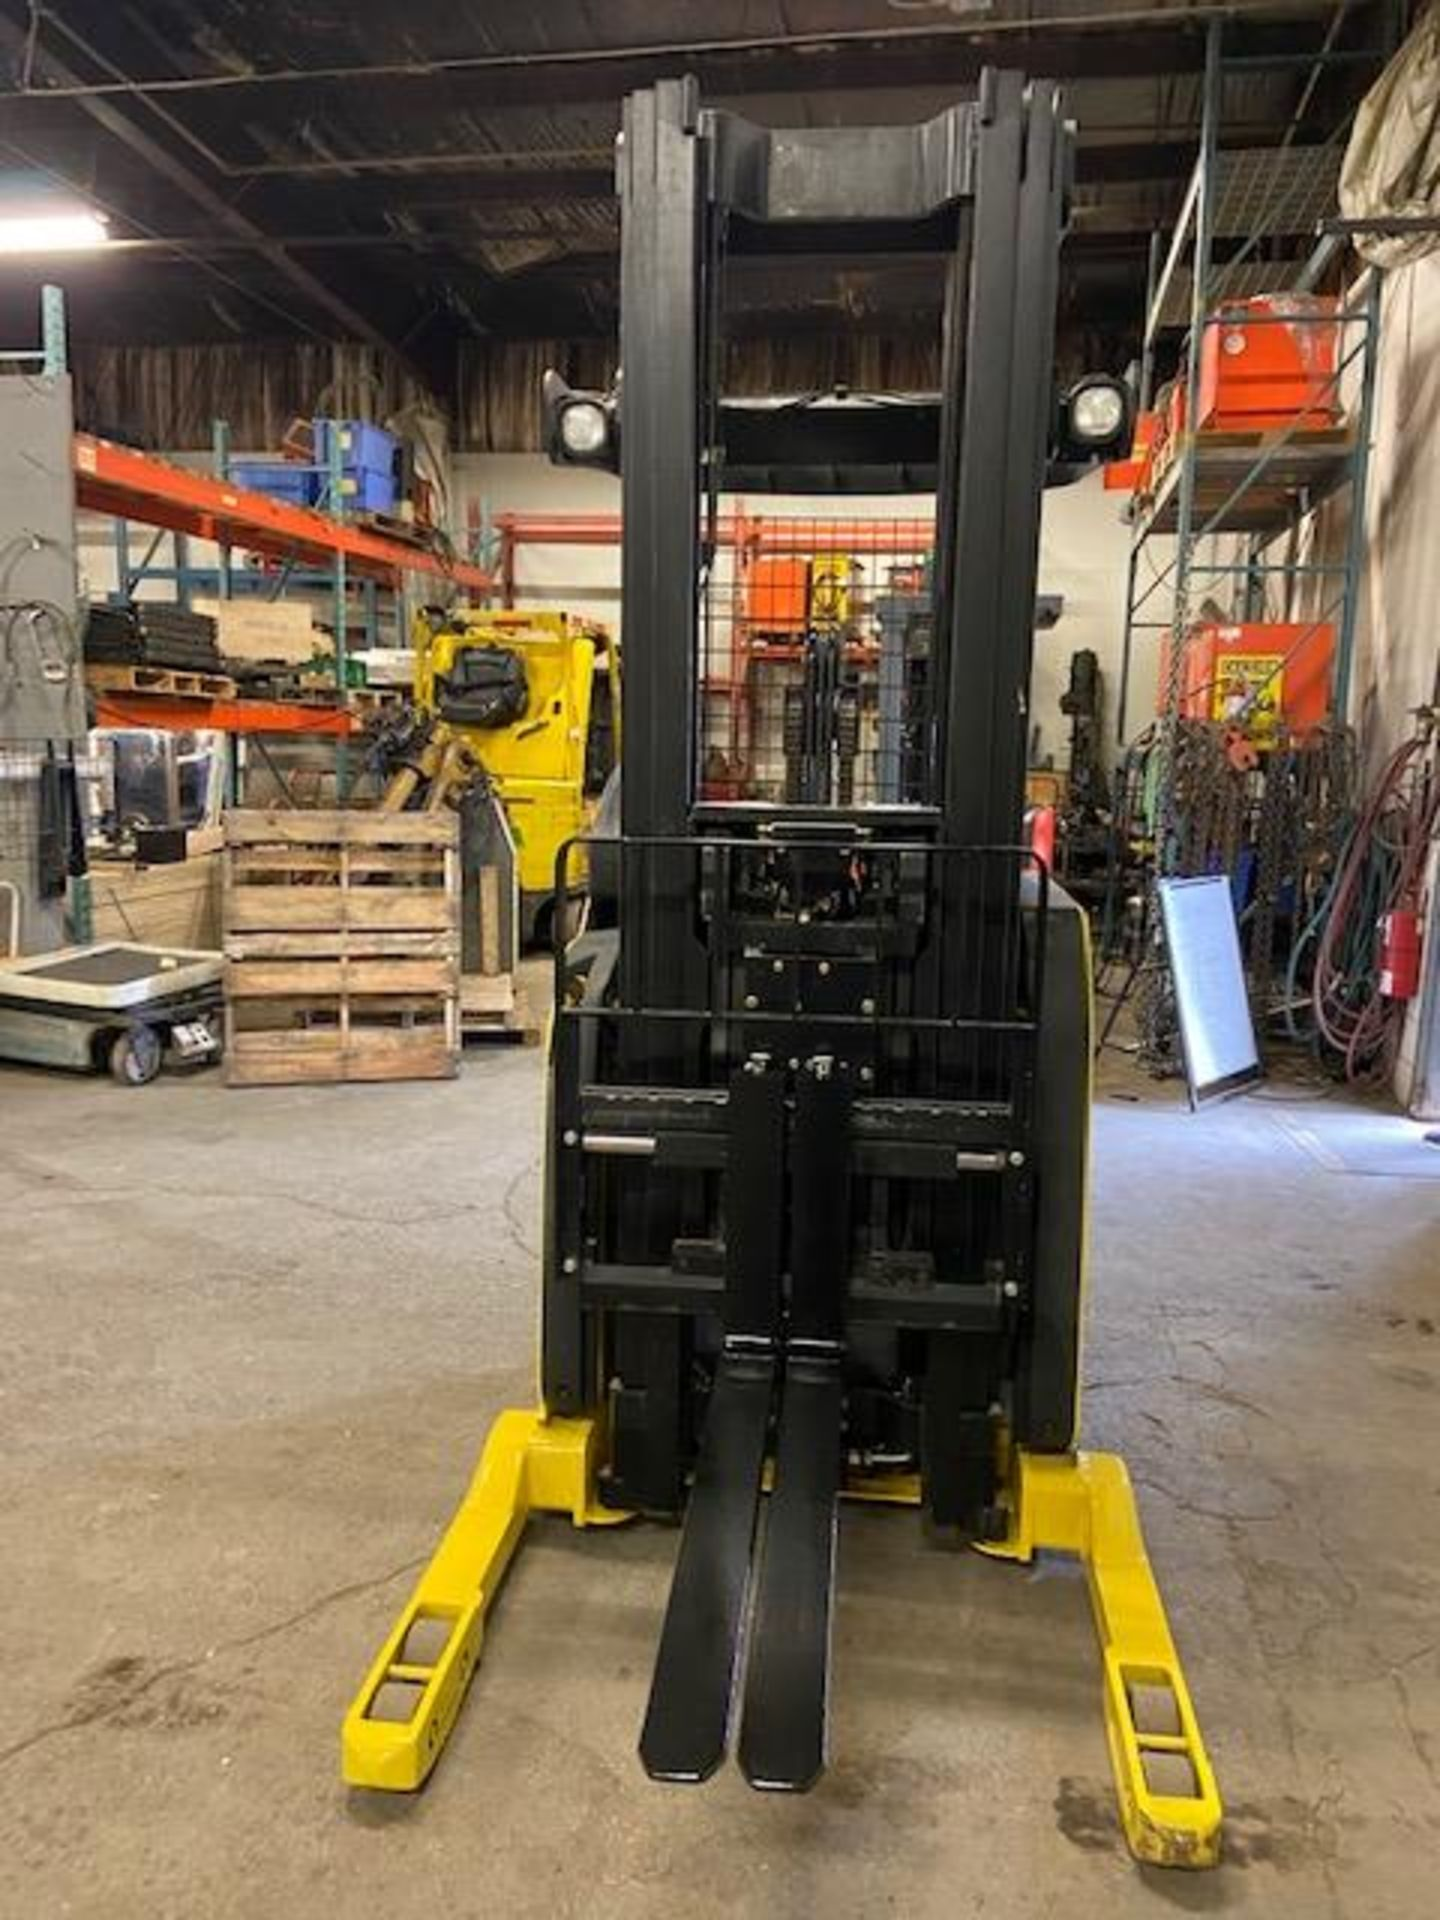 FREE CUSTOMS - Hyster Reach Truck Pallet Lifter REACH TRUCK electric 3500lbs with sideshift 3- - Image 4 of 4